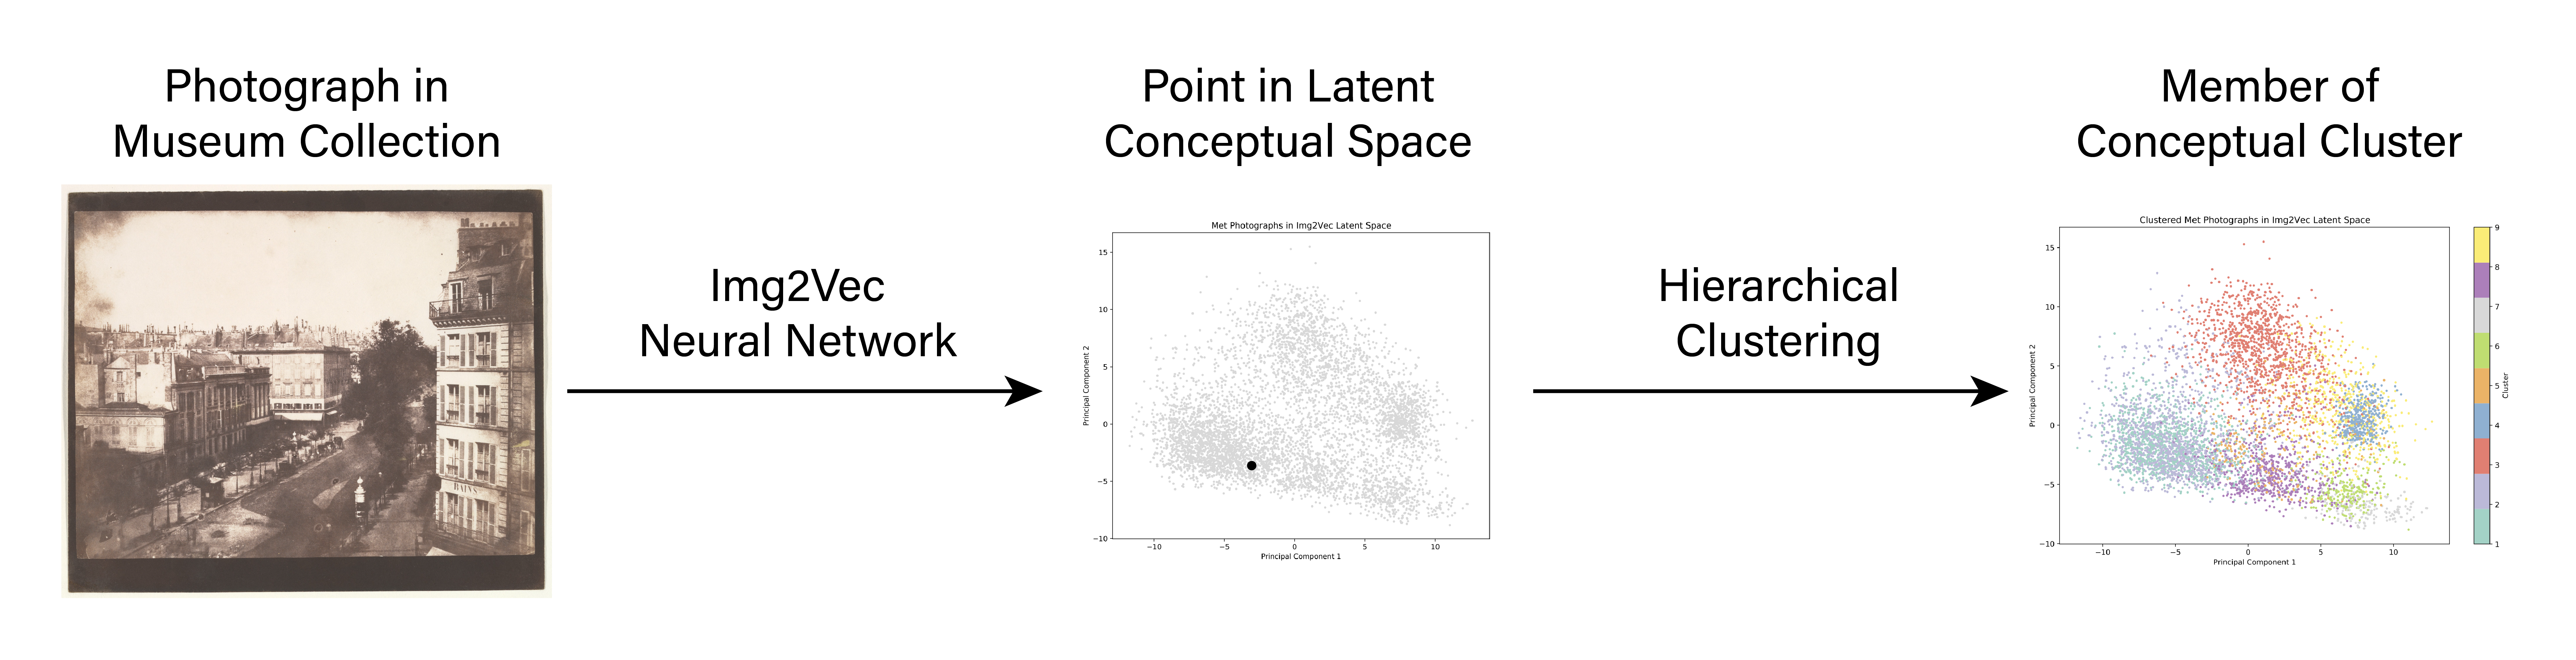 """A flow chart, with arrows pointing left to right between three graphics. The first is a photograph, labeled """"Photograph in Museum Collection"""", with an arrow pointing away labelled """"Img2Vec Neural Network"""". This arrow points to the second graphic labelled """"Point in Latent Conceptual Space"""", a scatter plot containing a cloud of grayed-out points. One point emphasized, which represents the first image in this latent conceptual space. The next arrow is labelled """"Hierarchical Clustering"""", pointing away from this plot to an near-identical plot labelled """"Member of Conceptual Cluster."""" The only difference between the second and third plots is that the points are now colored, representing which cluster they are in."""